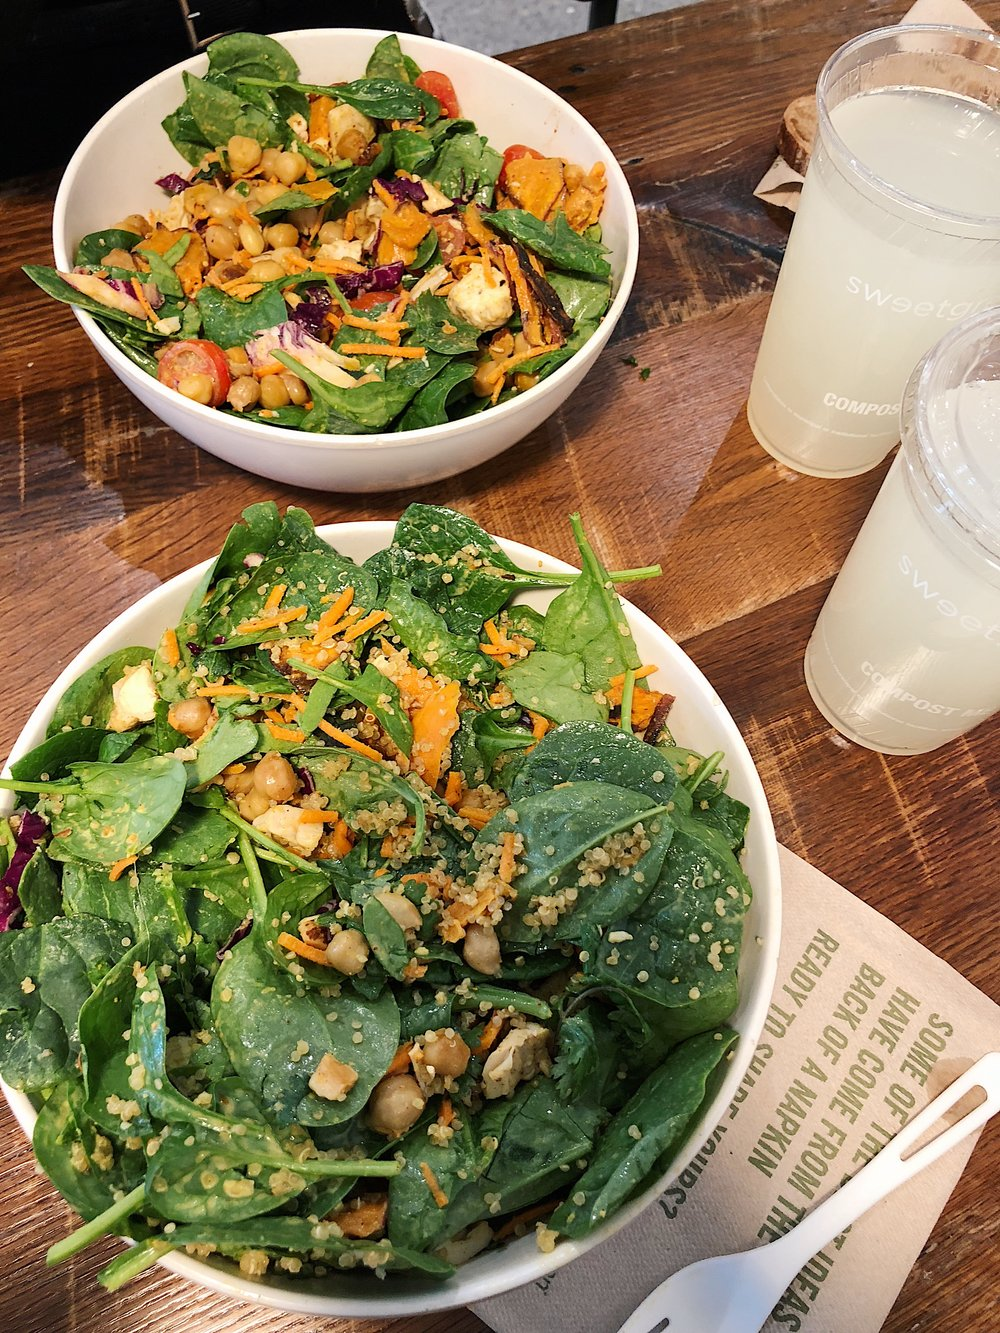 Curry Chickpea Bowls at Sweetgreen